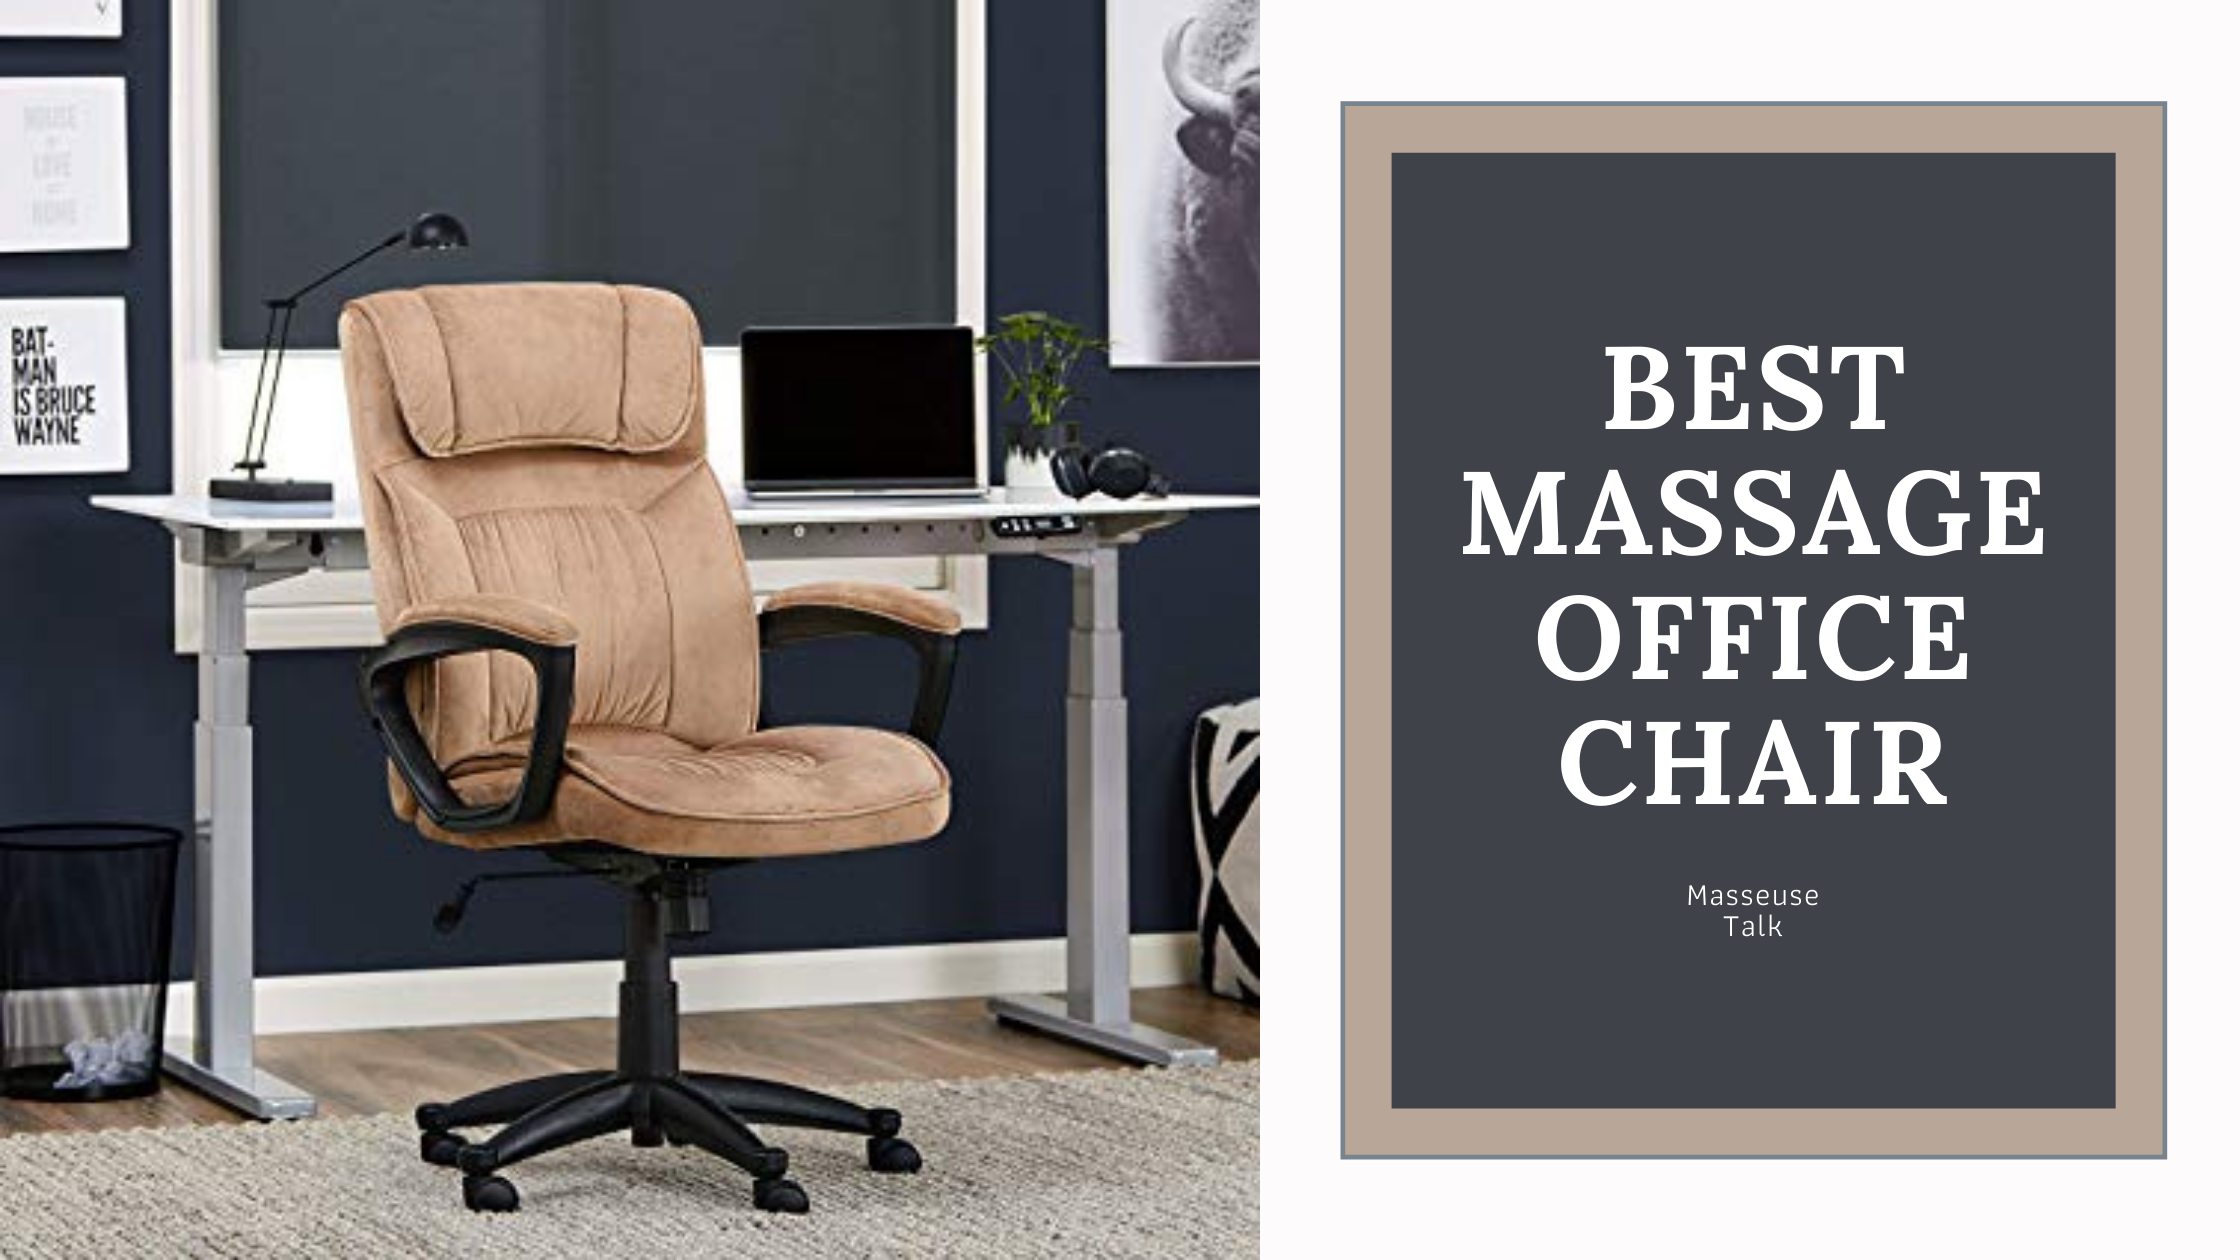 Best Massage Office Chair